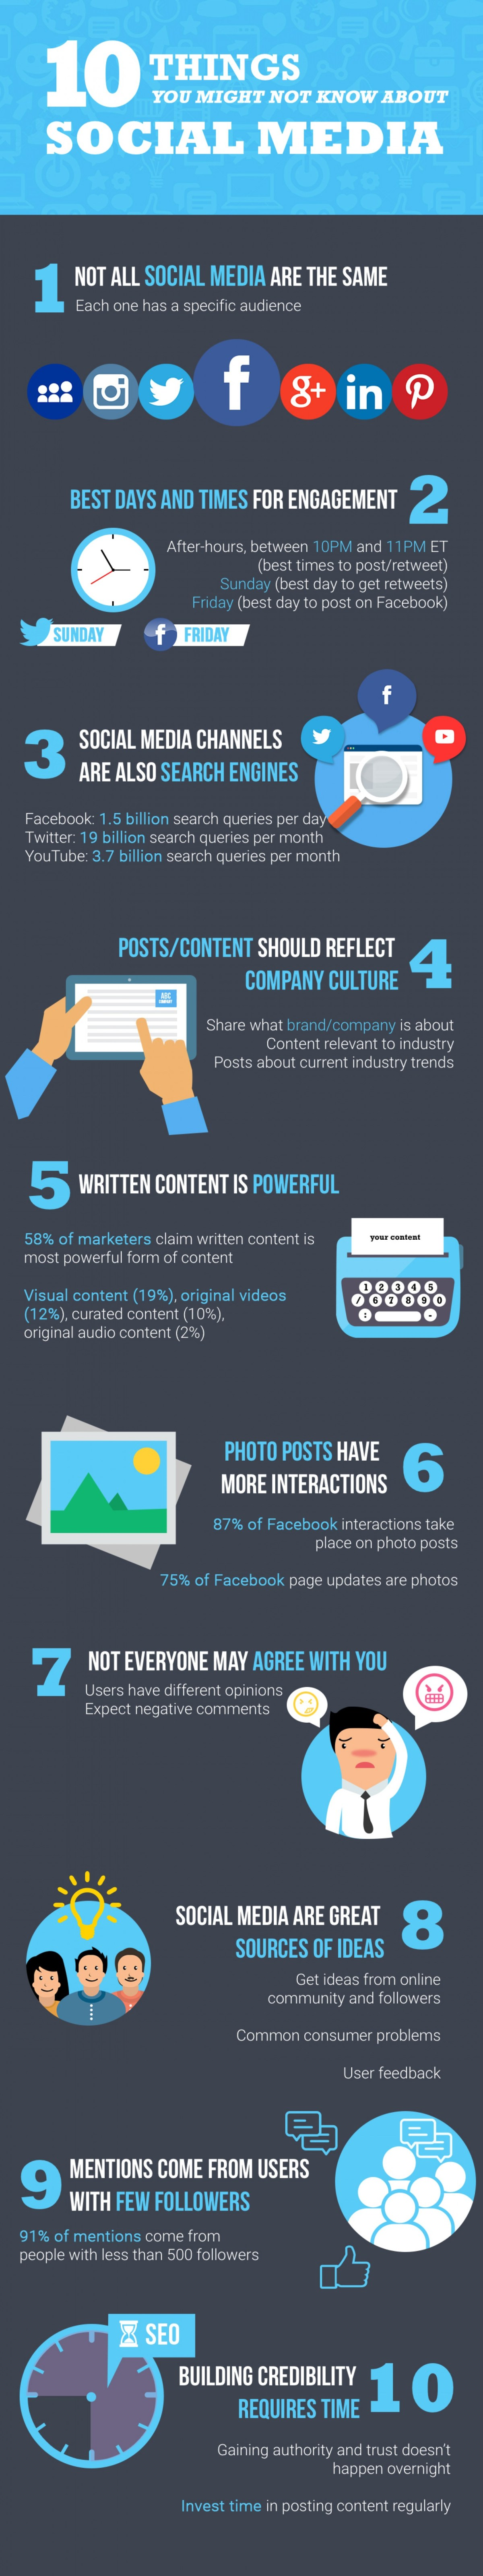 10-things-you-might-not-know-about-social-media_55ed2474cadfa_w1500